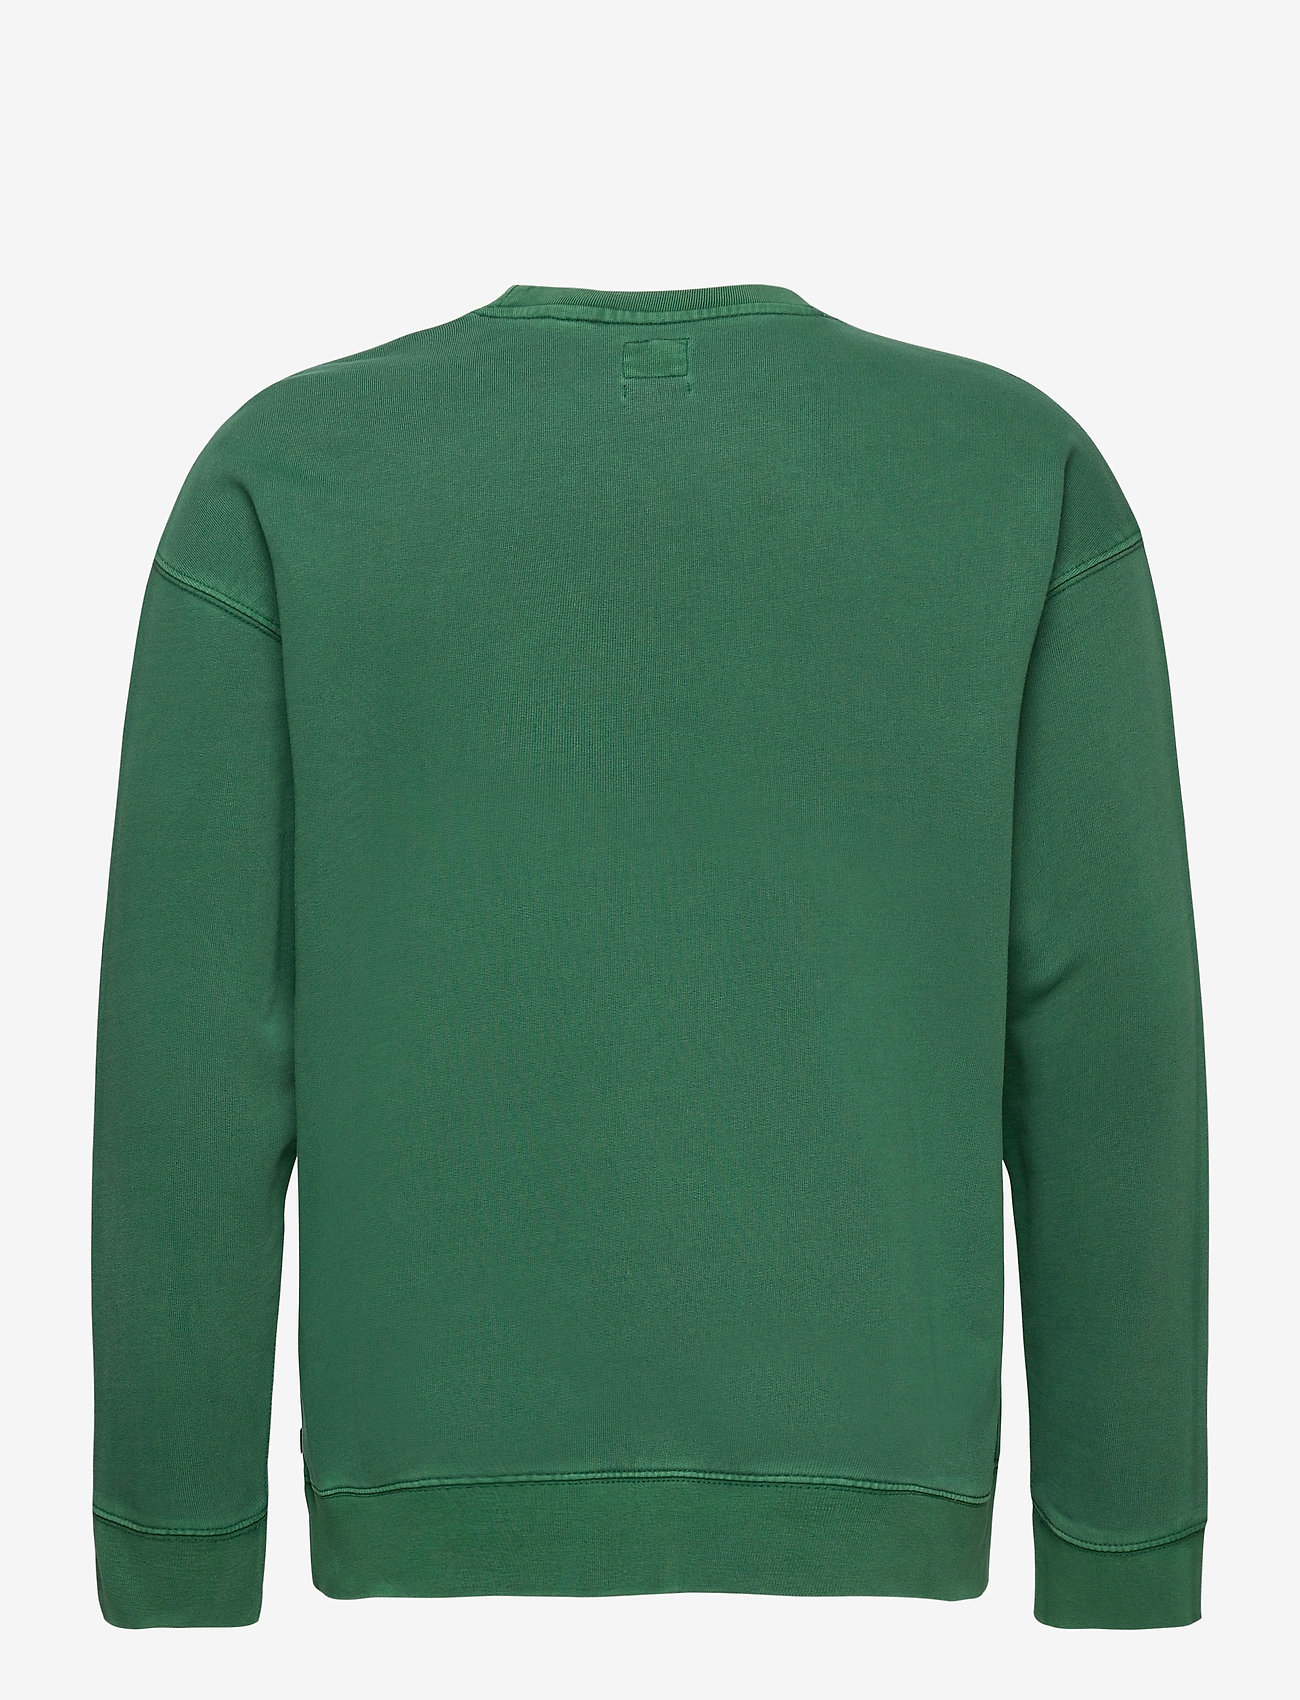 LEVI´S Men - RELAXED T2 GRAPHIC CREW SSNL M - kläder - greens - 1